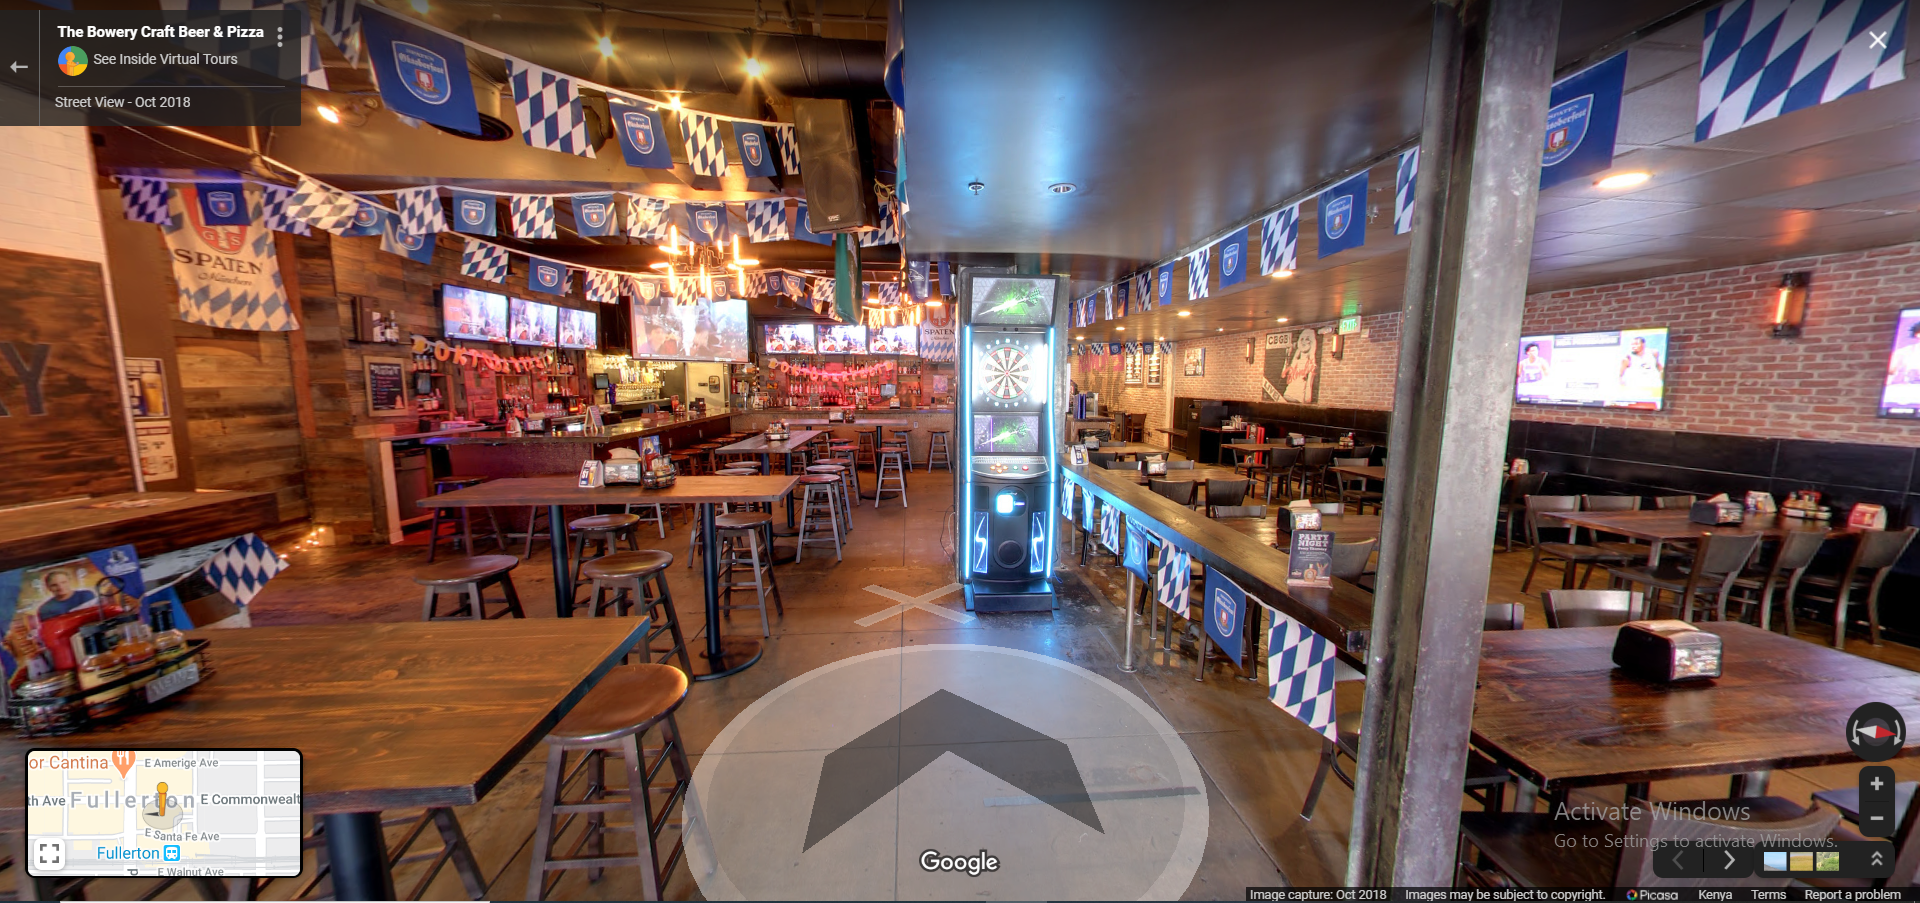 The Bowery Craft Beer & Pizza - Fullerton